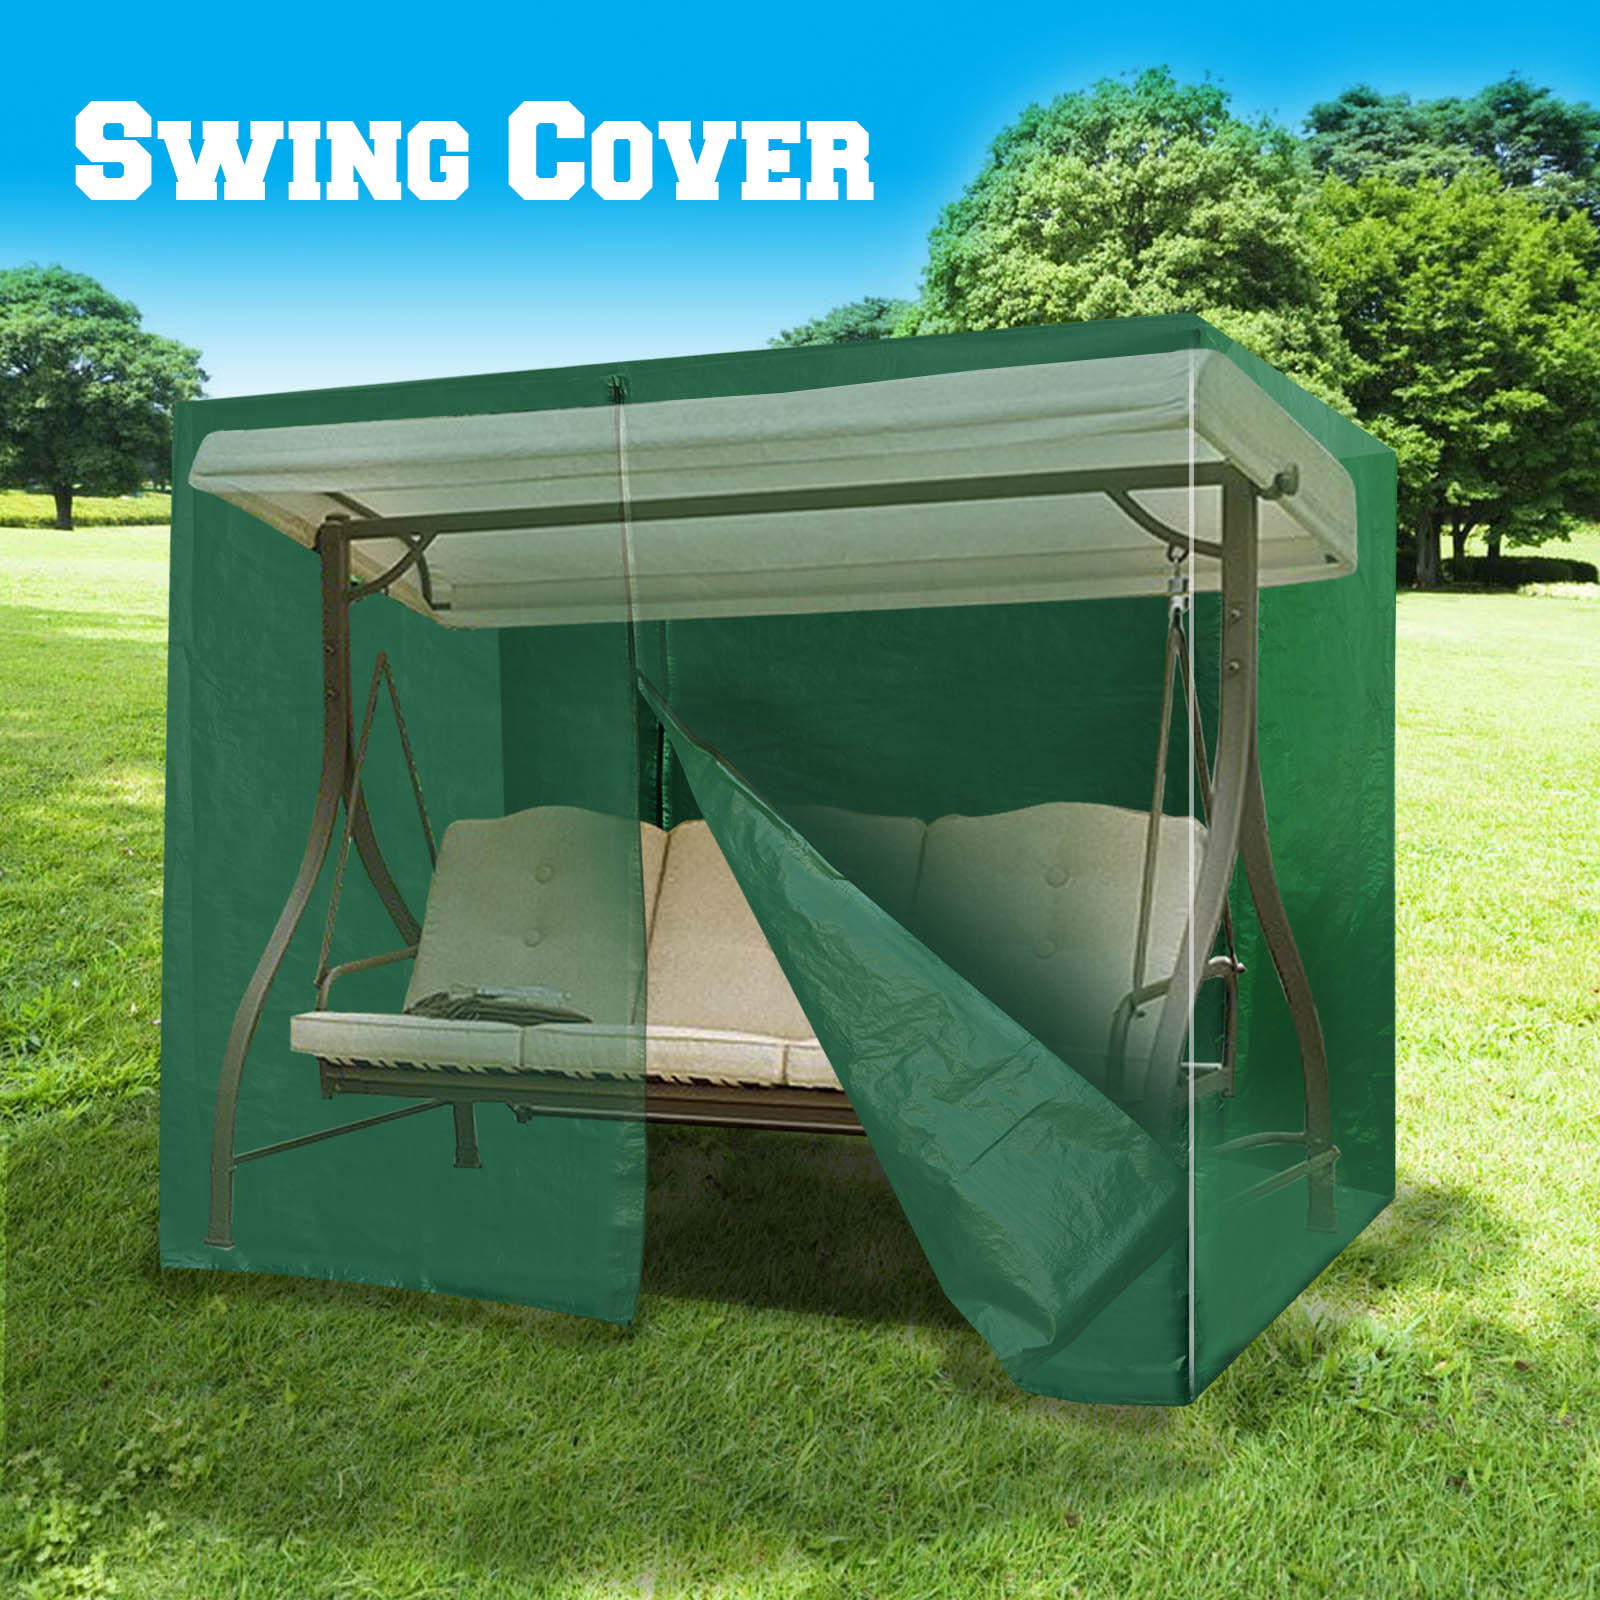 Sunrise Outdoor Patio 3 Seat Swing Cover Protector, Furniture Cover, Tan